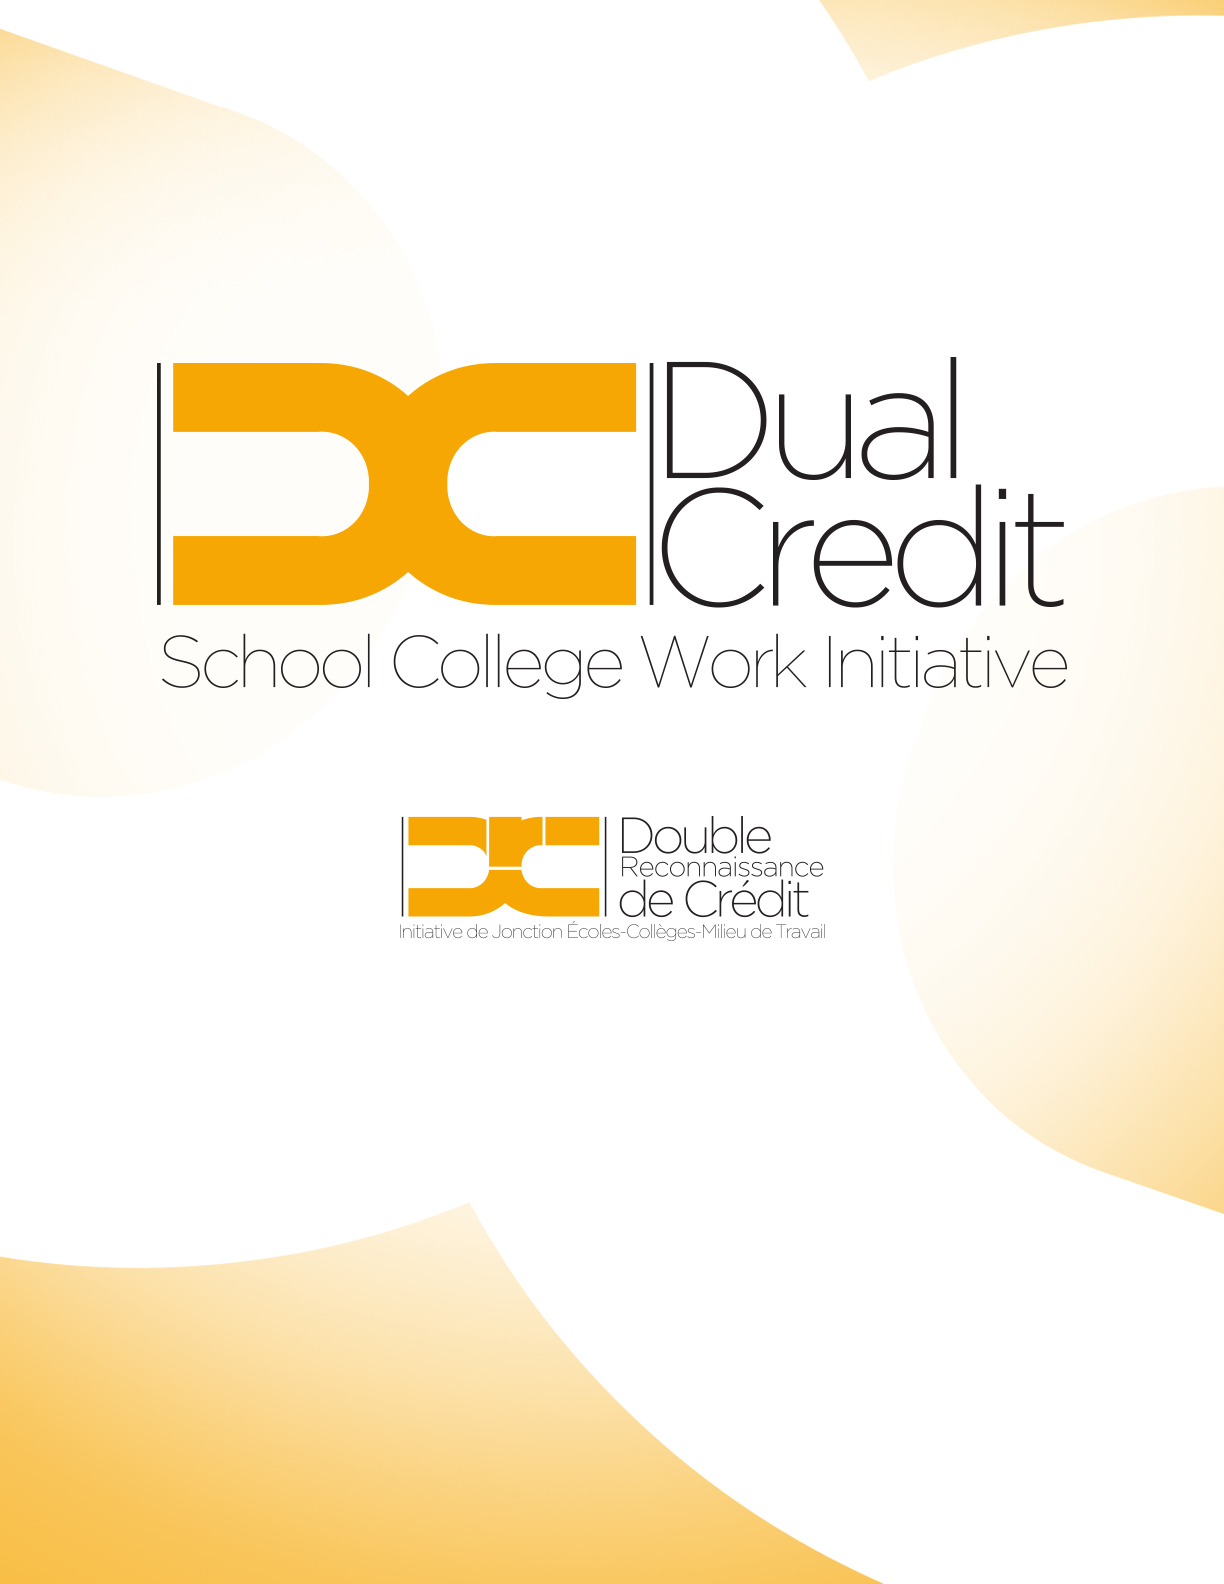 Dual Credit provincially adopted logo